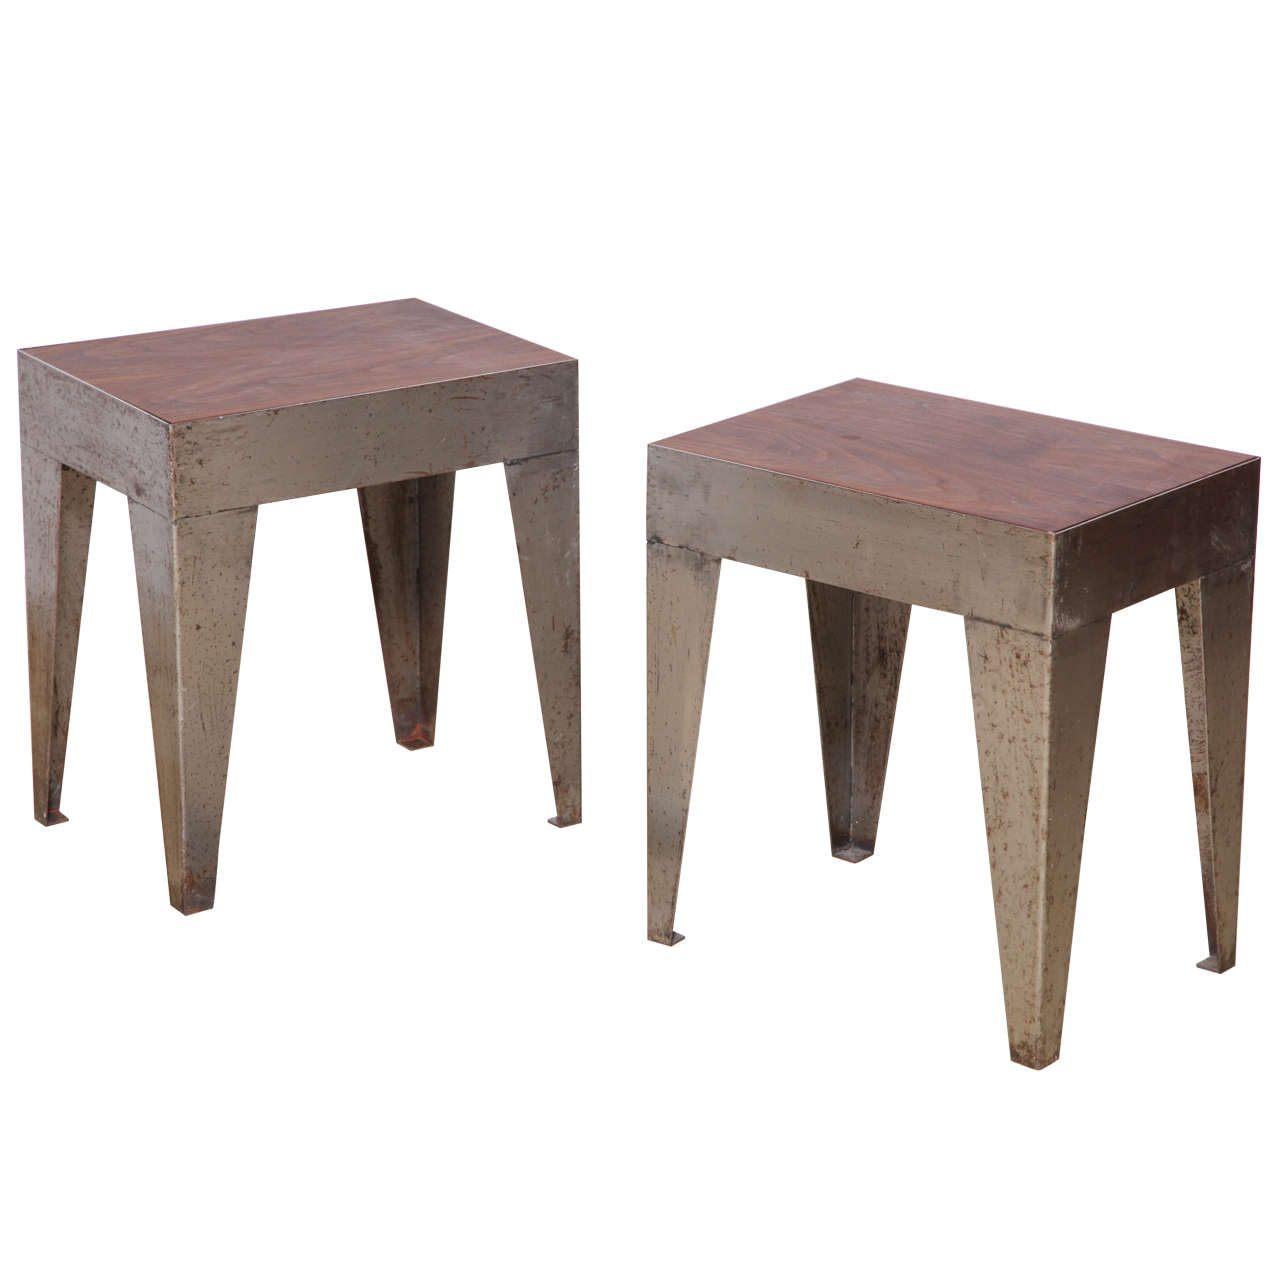 Pair Of Small Industrial Coffee Tables At 1stdibs